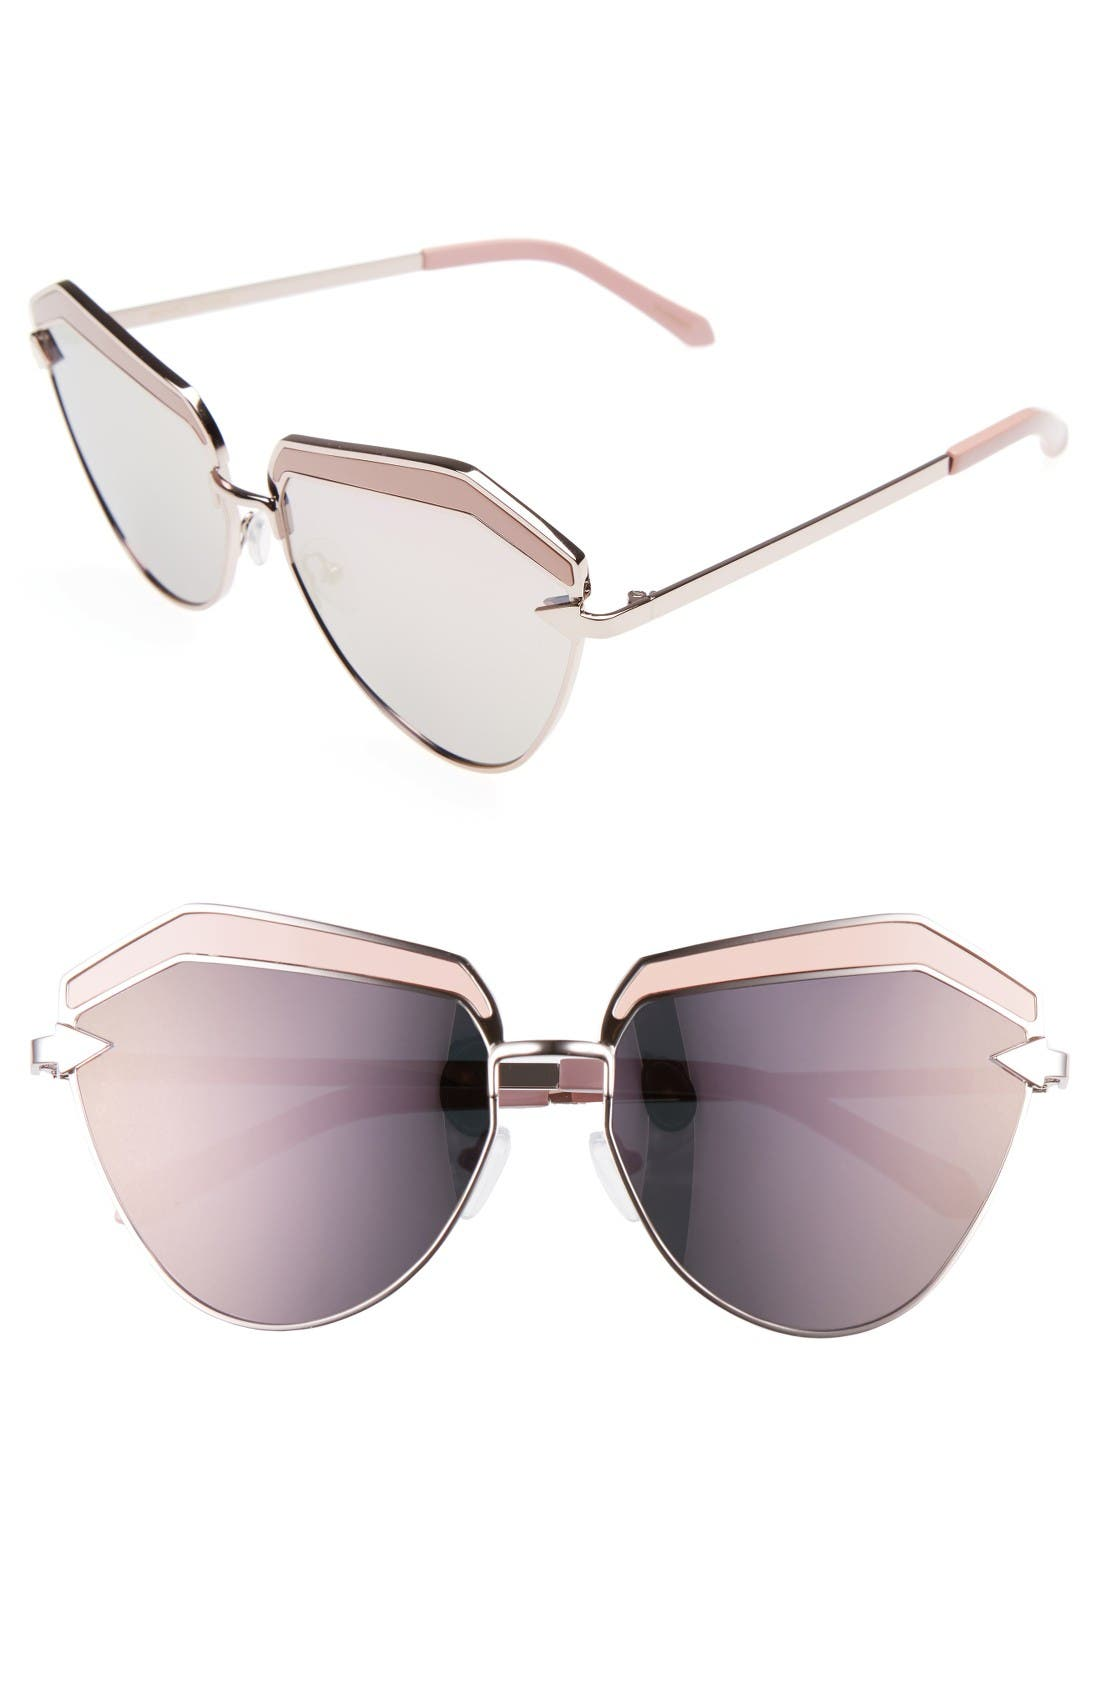 Karen Walker Jacinto 61mm Sunglasses